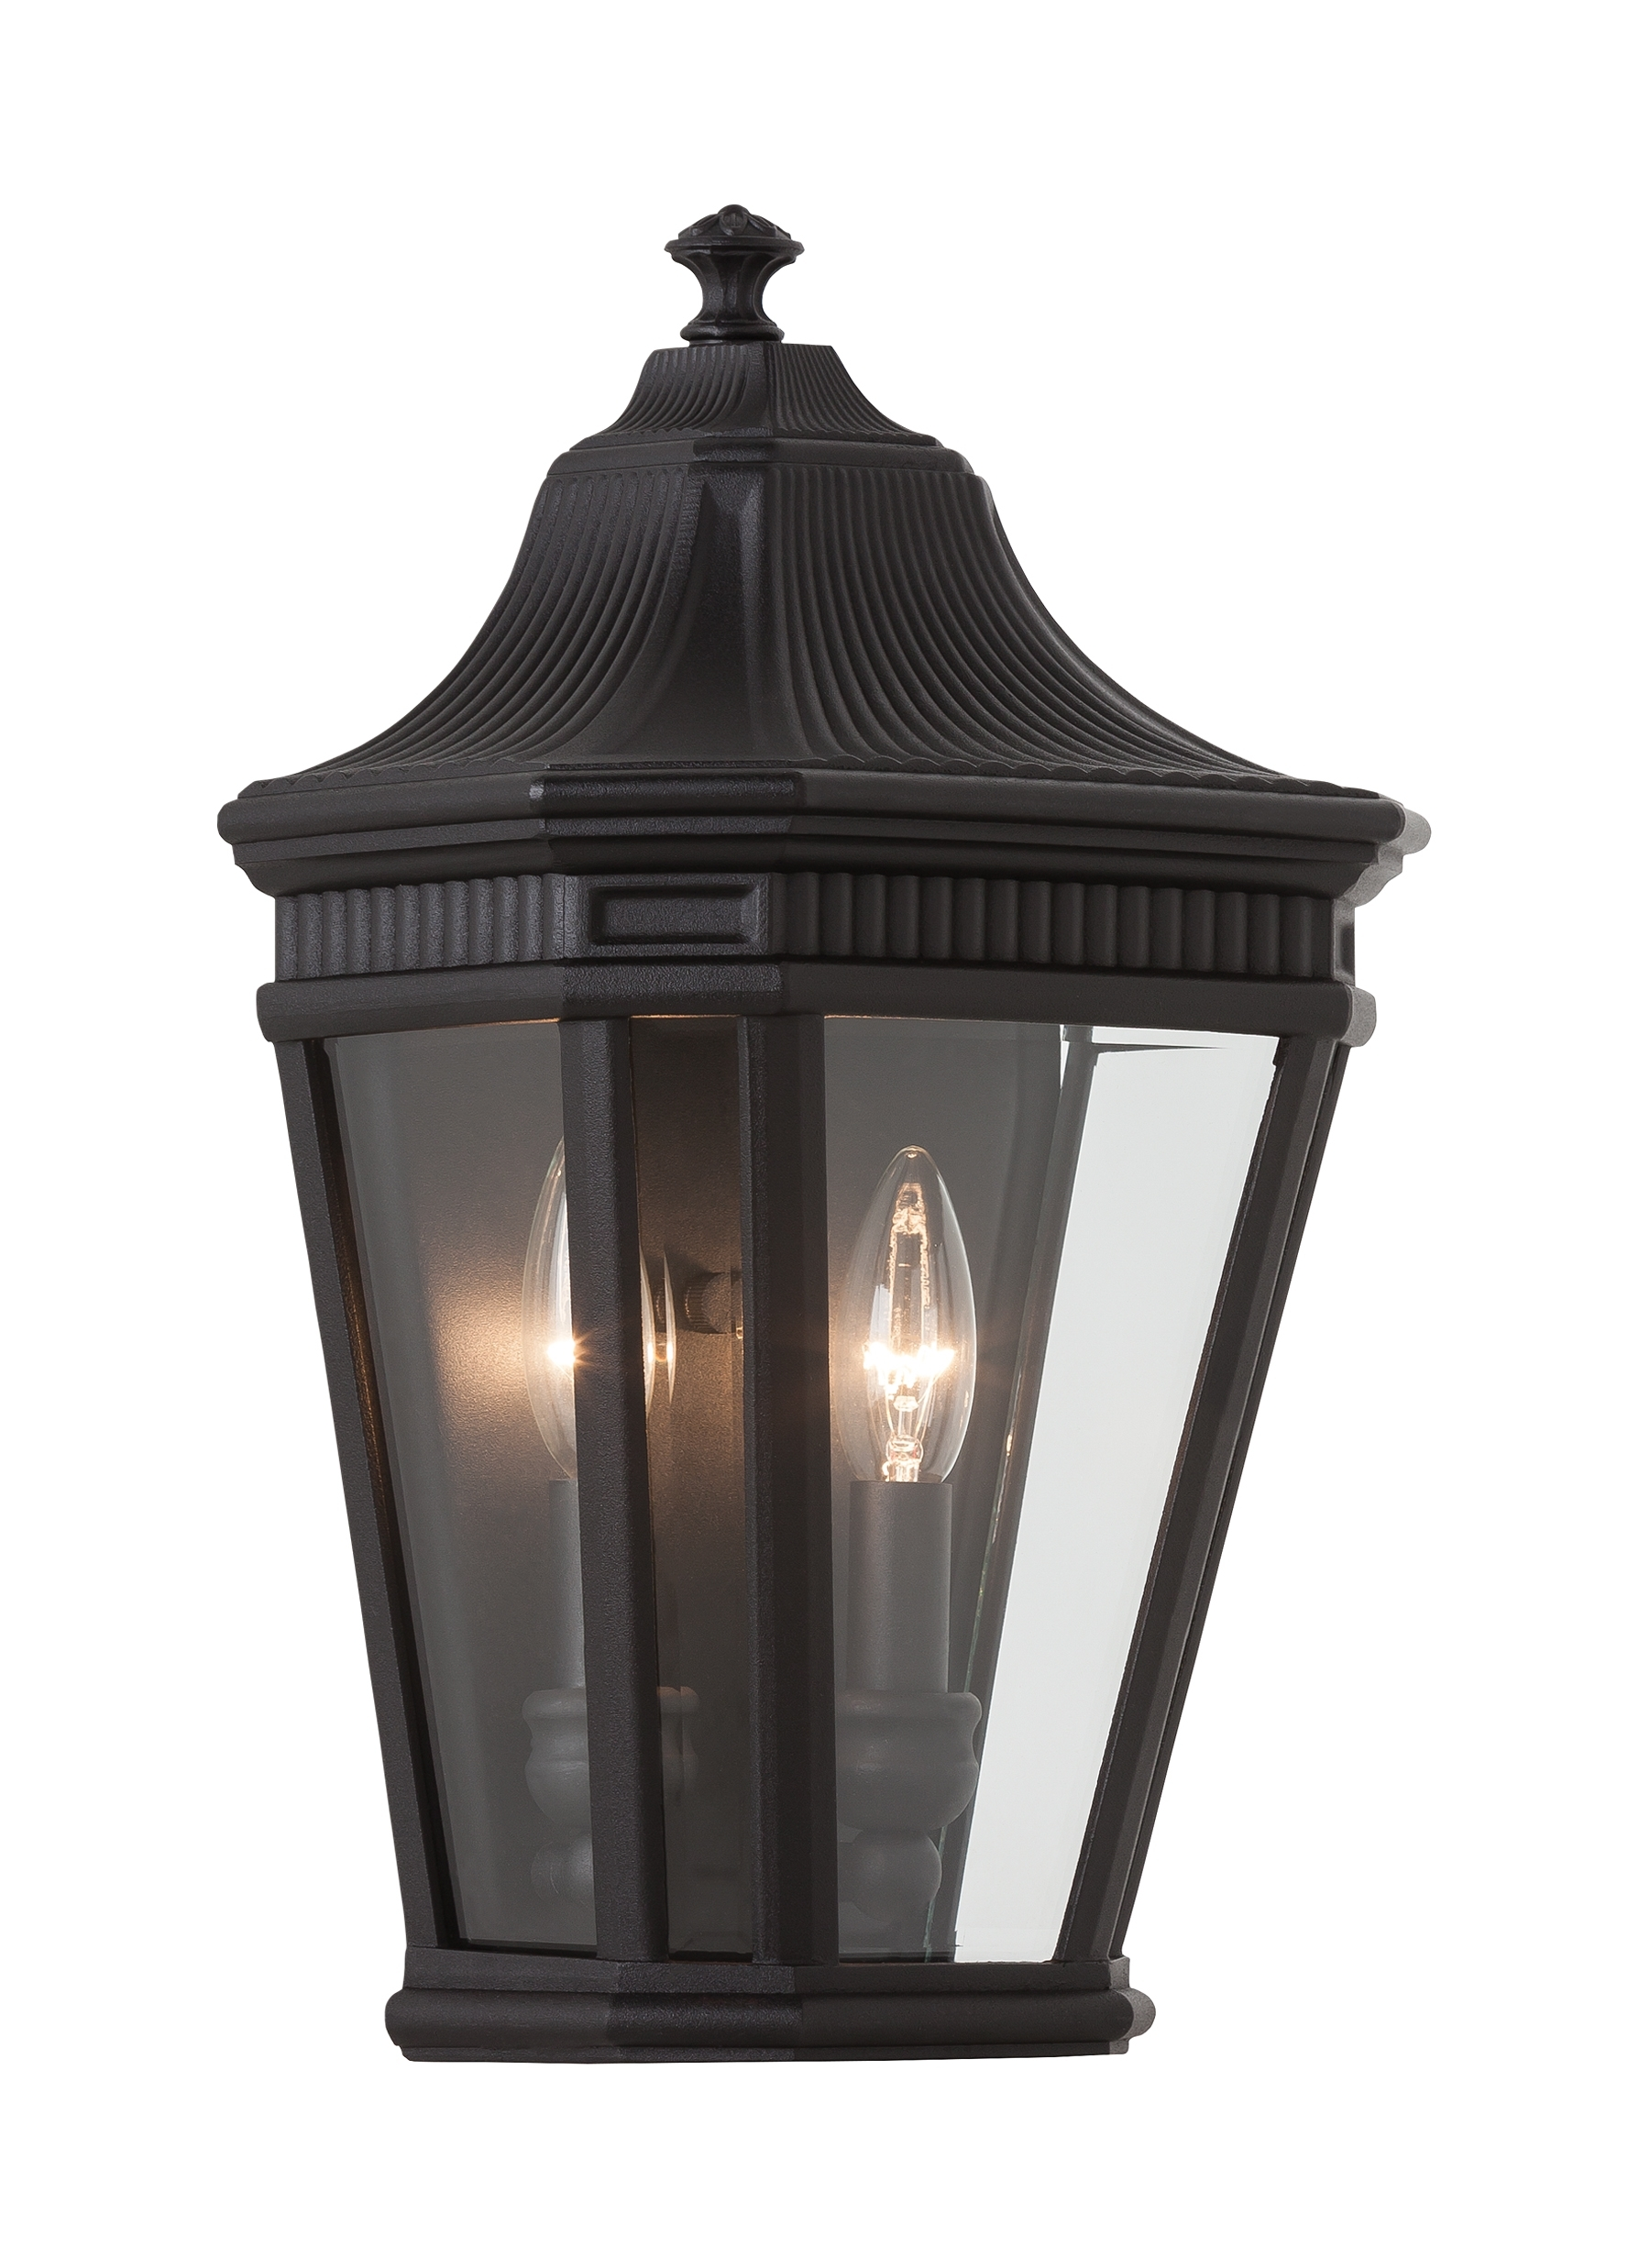 Half Lantern Outside Wall Lights Throughout Most Current Ol5403bk,2 – Light Wall Lantern,black (View 7 of 20)